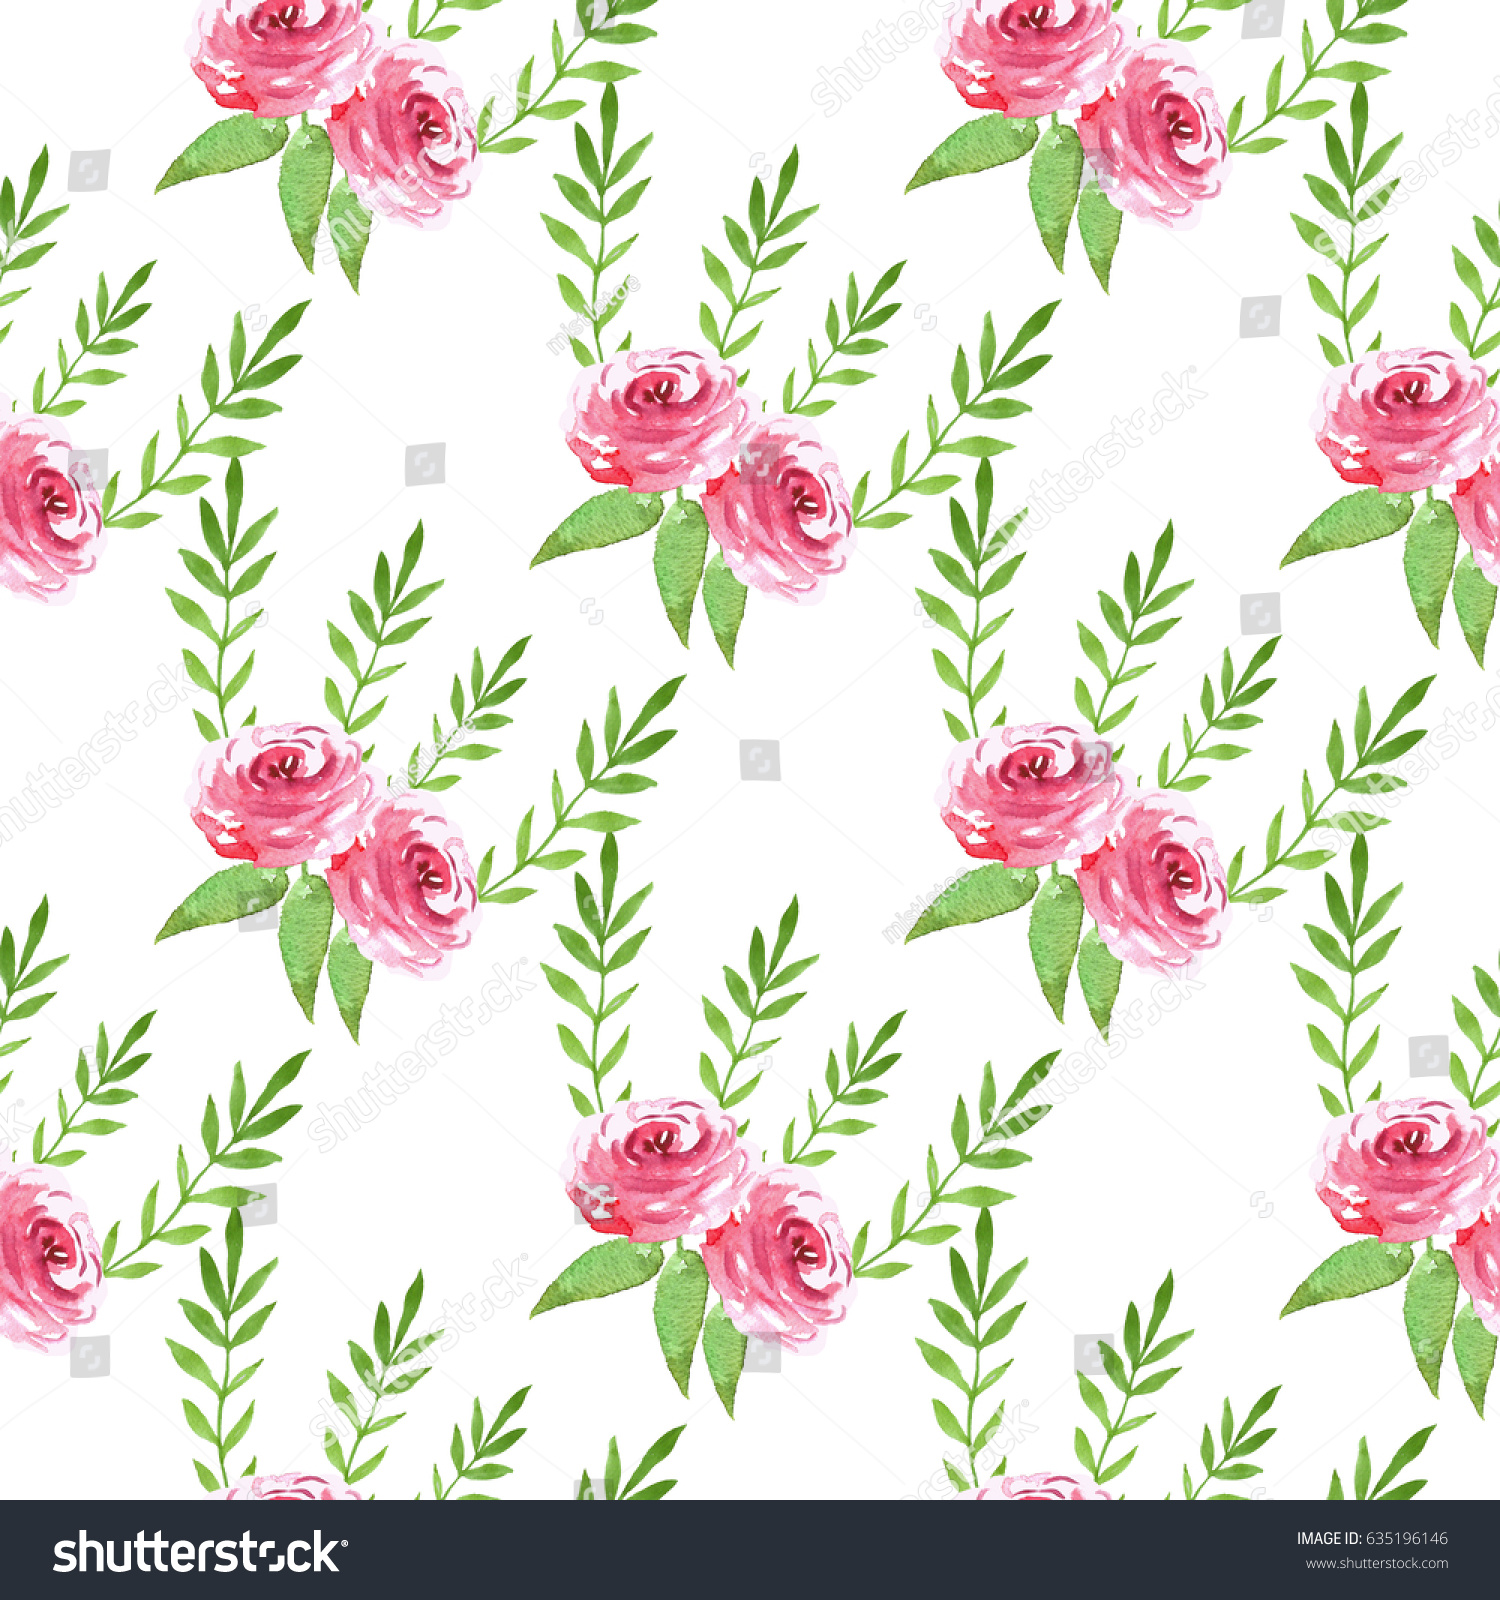 Decorative seamless pattern with flowers beautiful floral id 635196146 izmirmasajfo